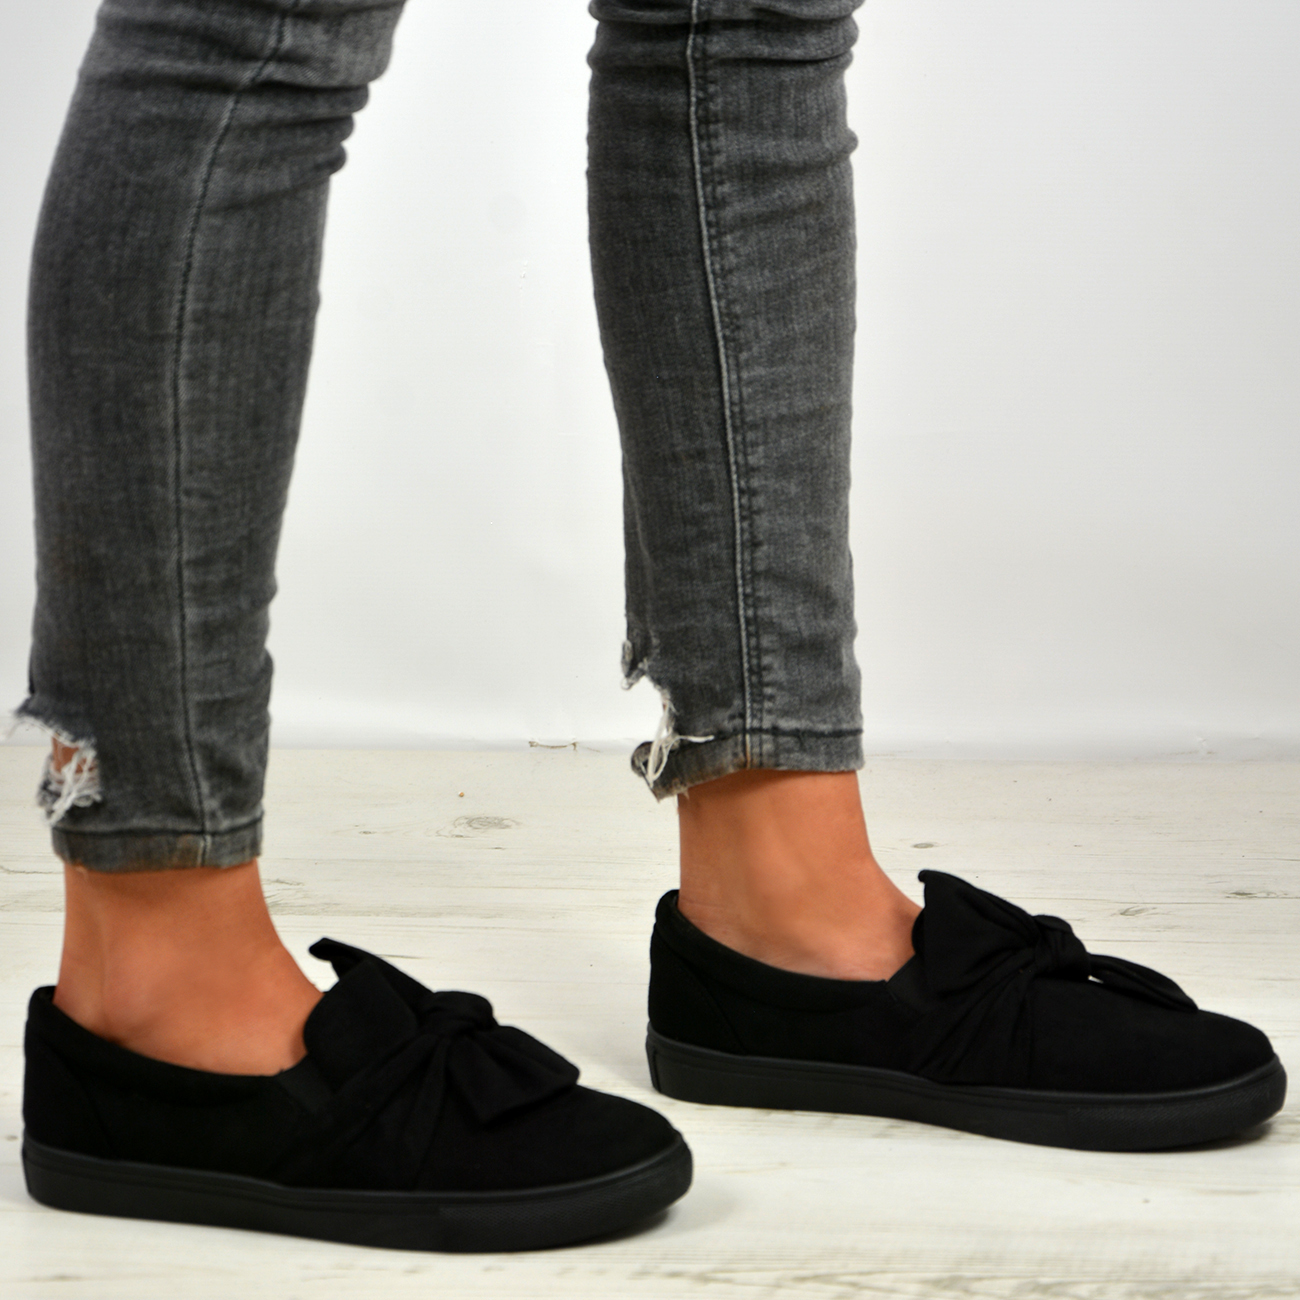 New-Womens-Ladies-Bow-Flat-Trainers-Slip-On-Sneakers-Plimsoll-Shoes-Size-Uk-3-8